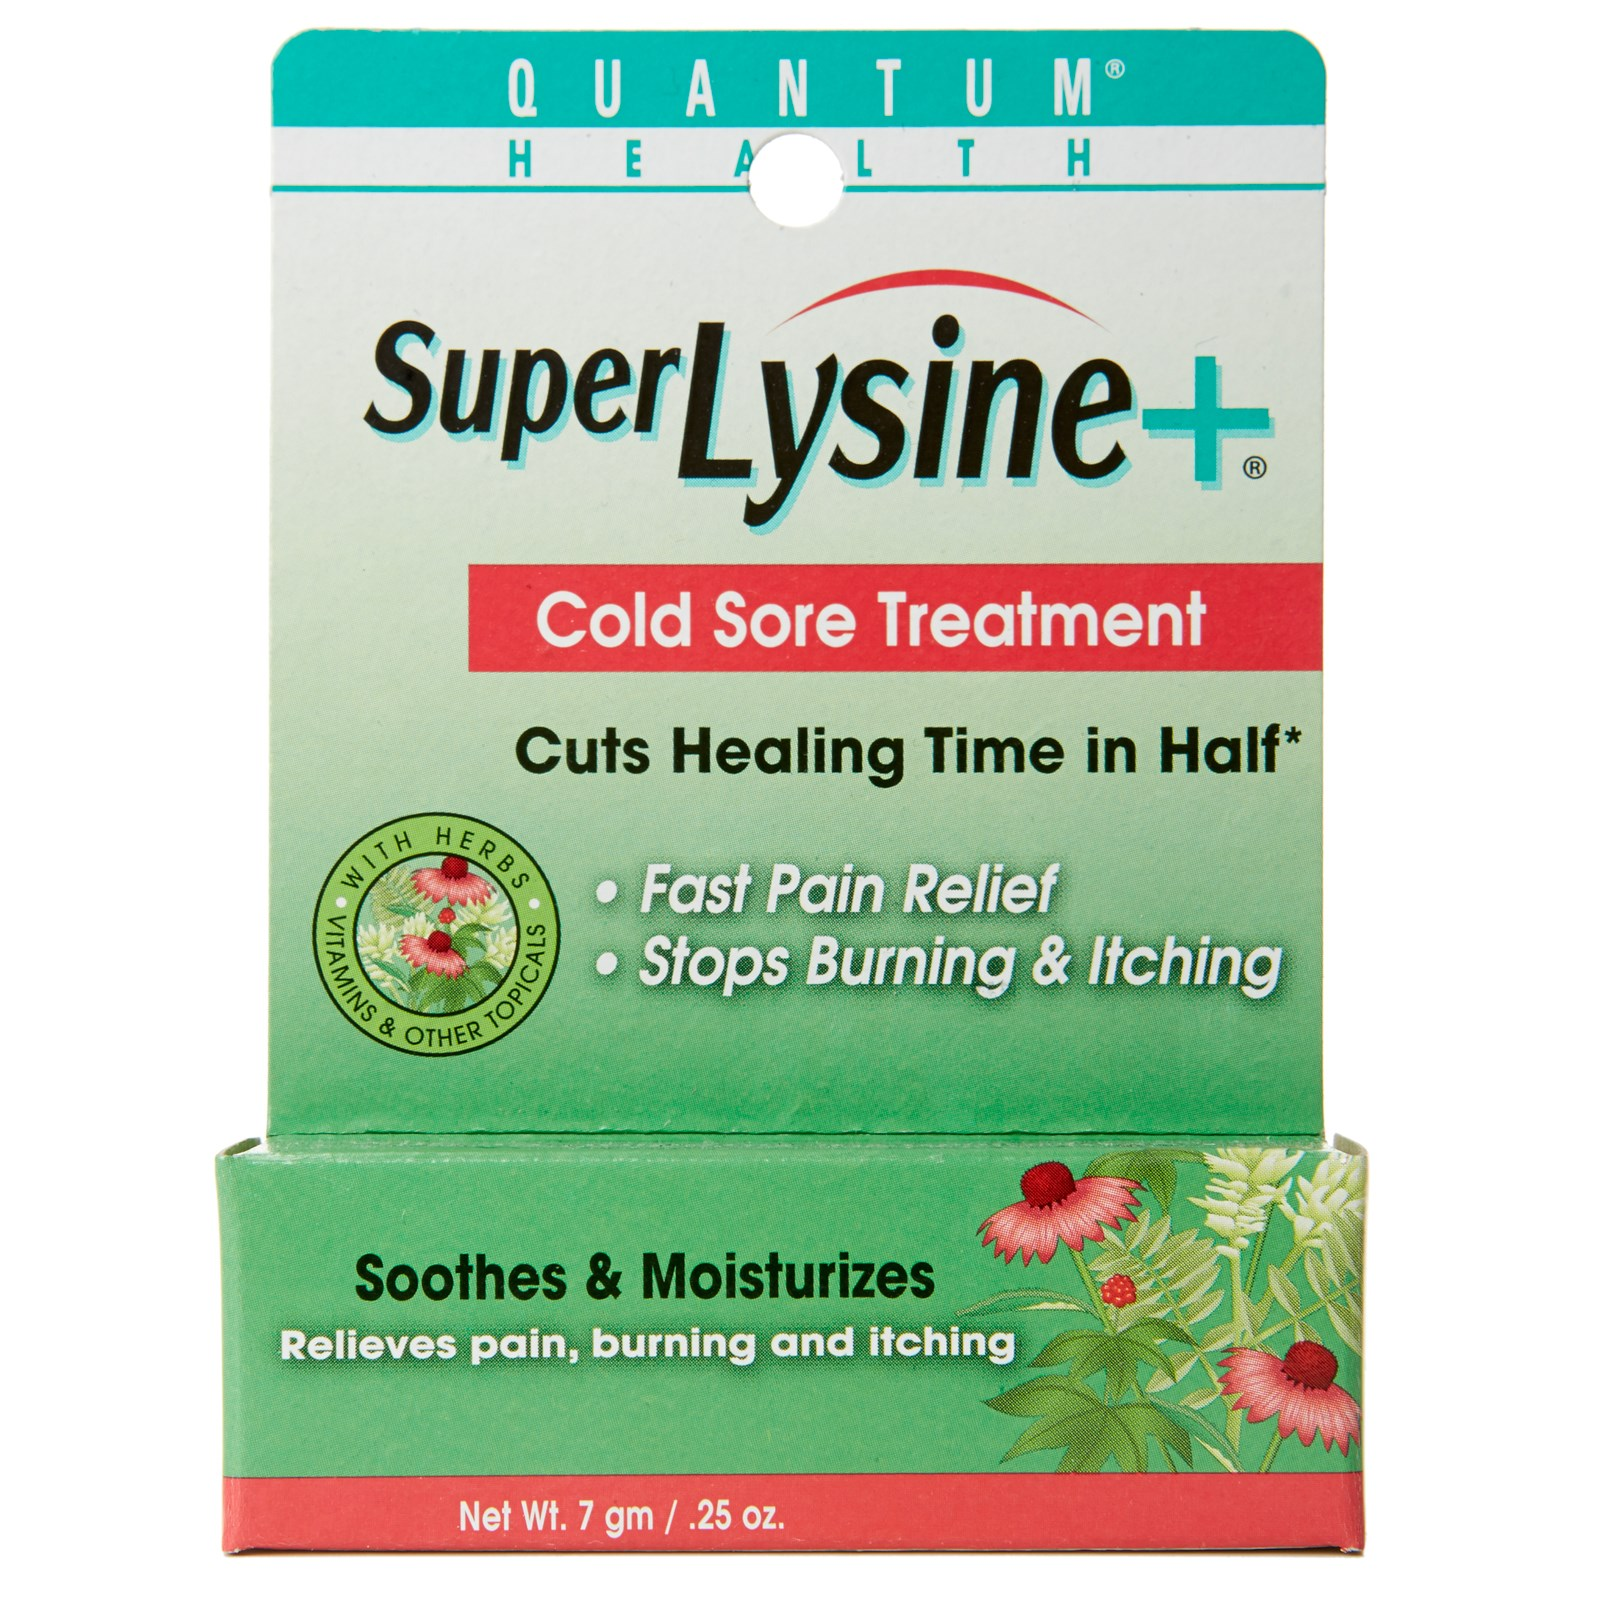 Super Lysine+ Cold Sore Treatments Image